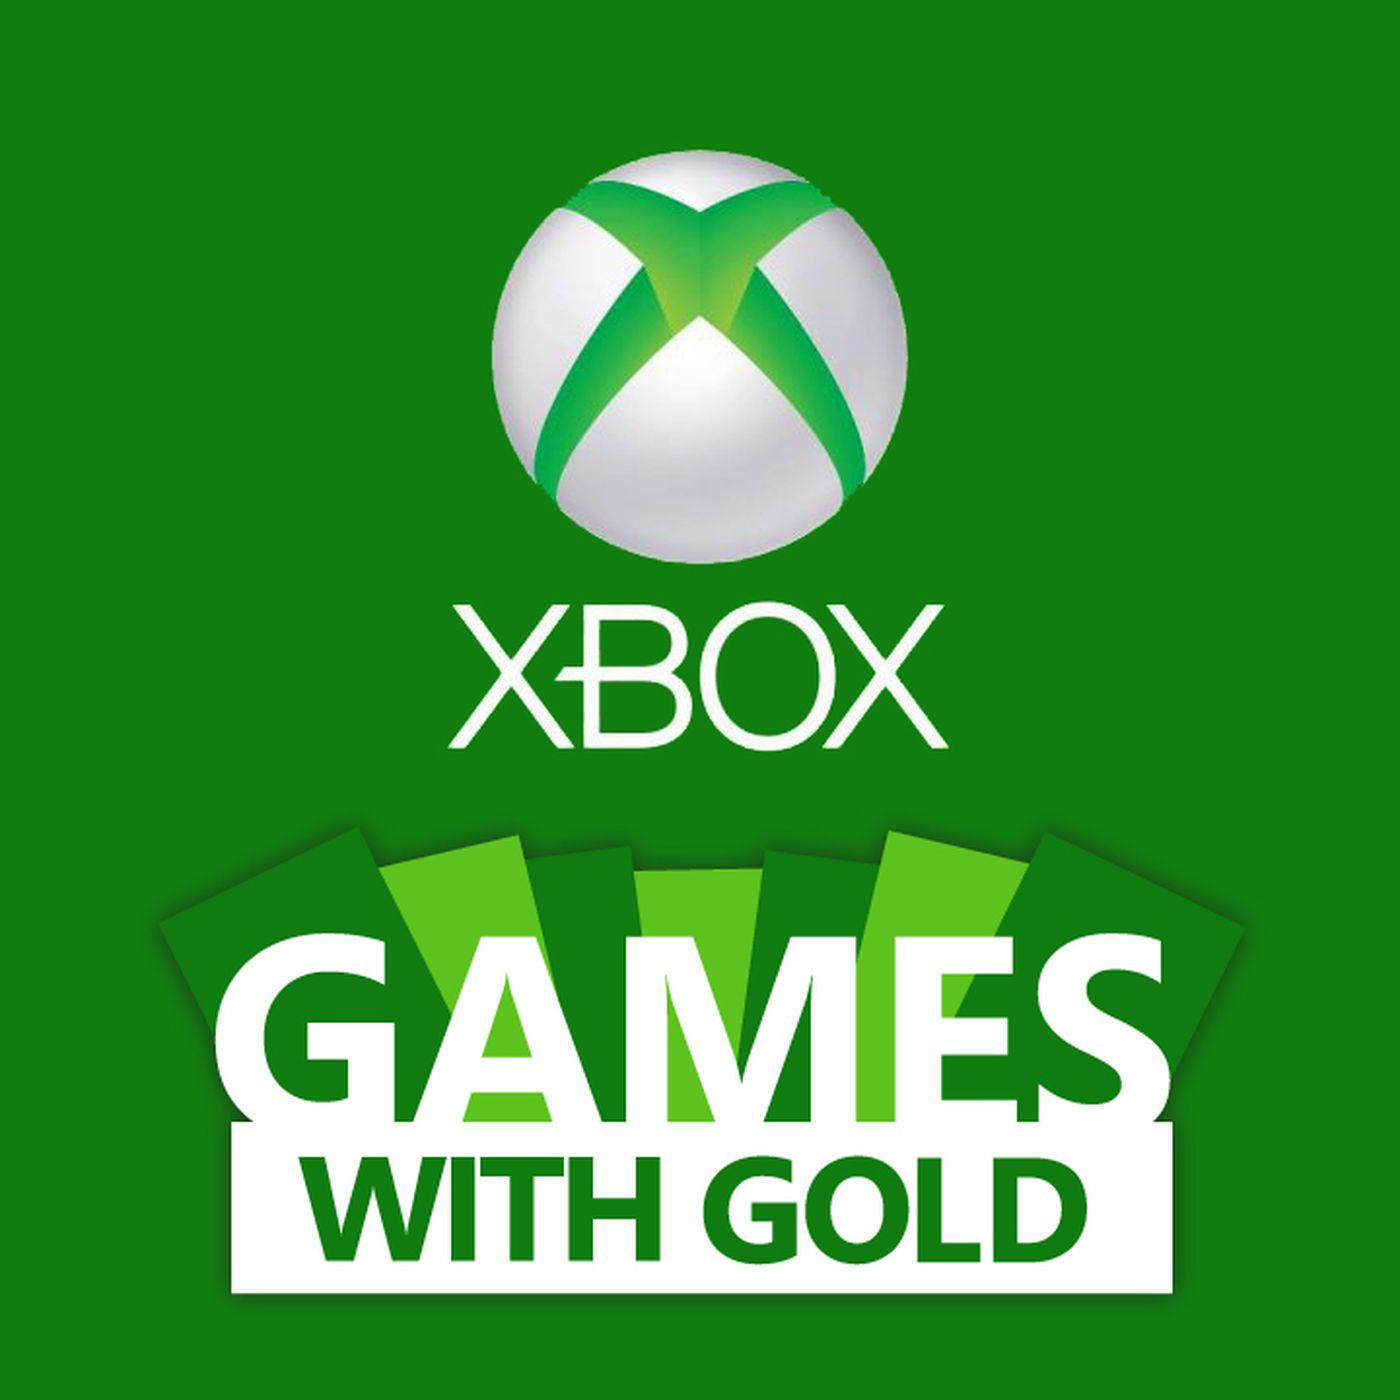 Xbox Games With Gold gave out $930 worth of games in 2016